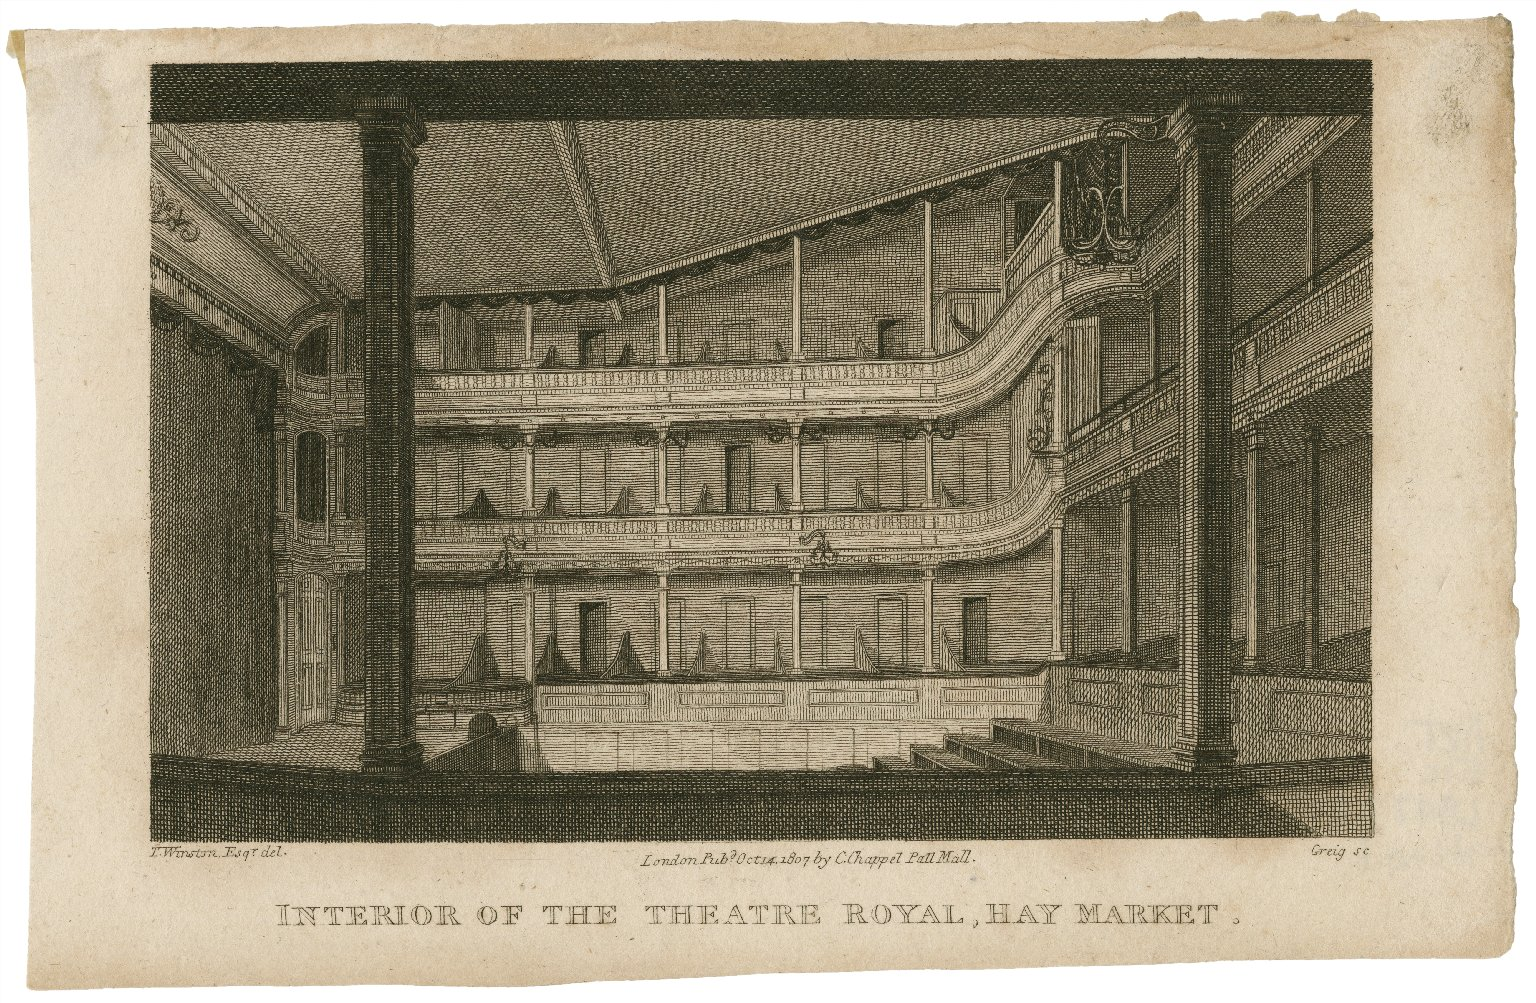 /media/Theatre Royal, Haymarket, 1807